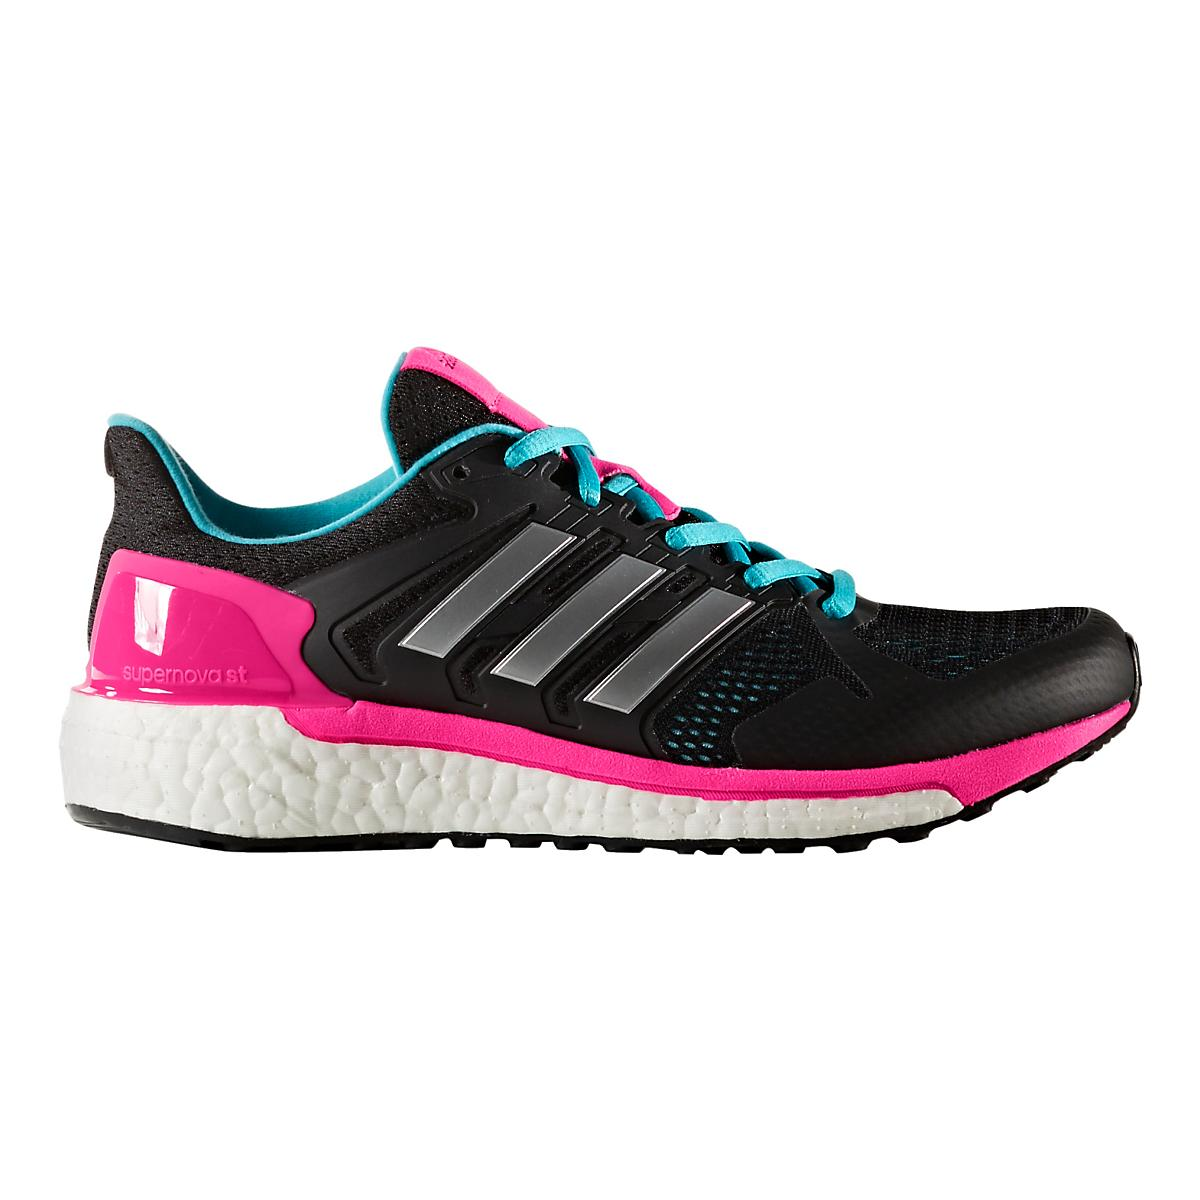 523ce4c3f298a Womens adidas Supernova ST Running Shoe at Road Runner Sports